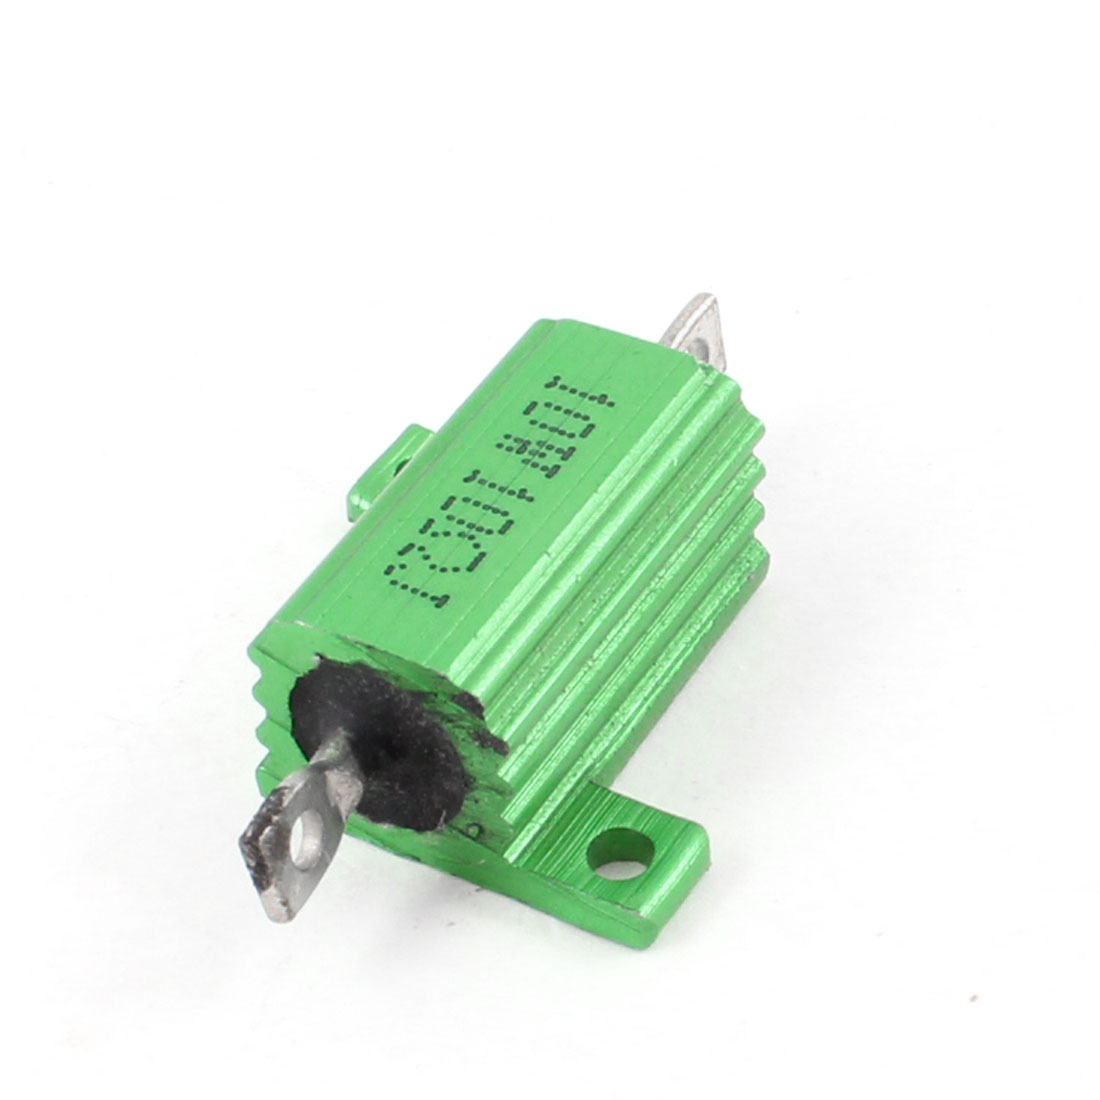 Green Aluminum Chassis Mounted Wirewound Resistors 10W 10 Ohm 5%